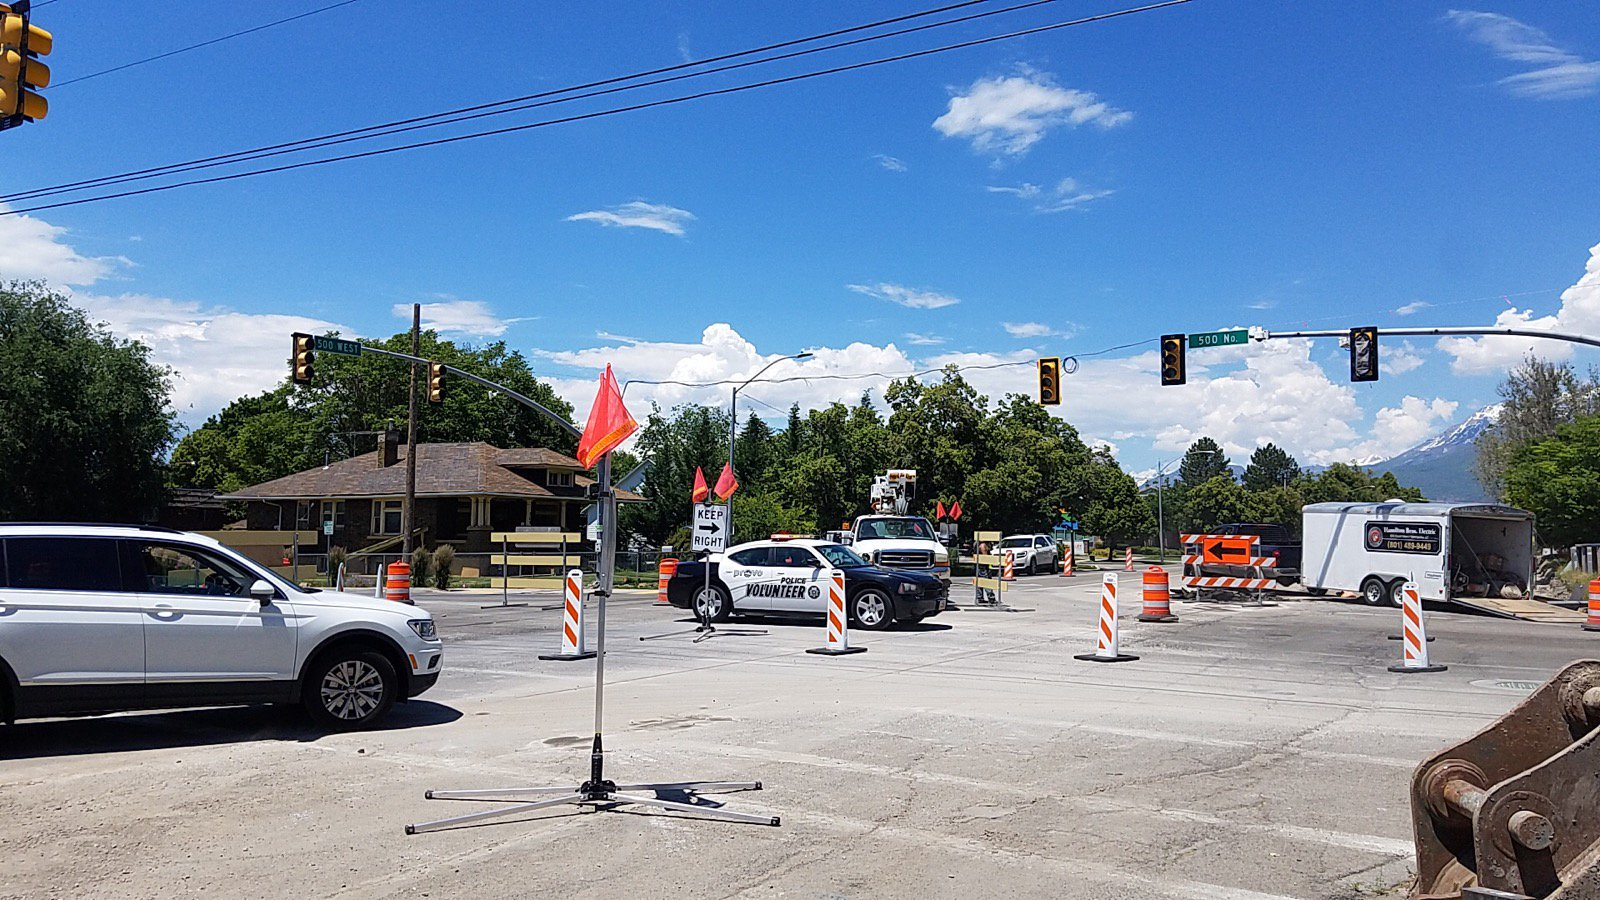 Traffic signal out due to a power outage in Provo